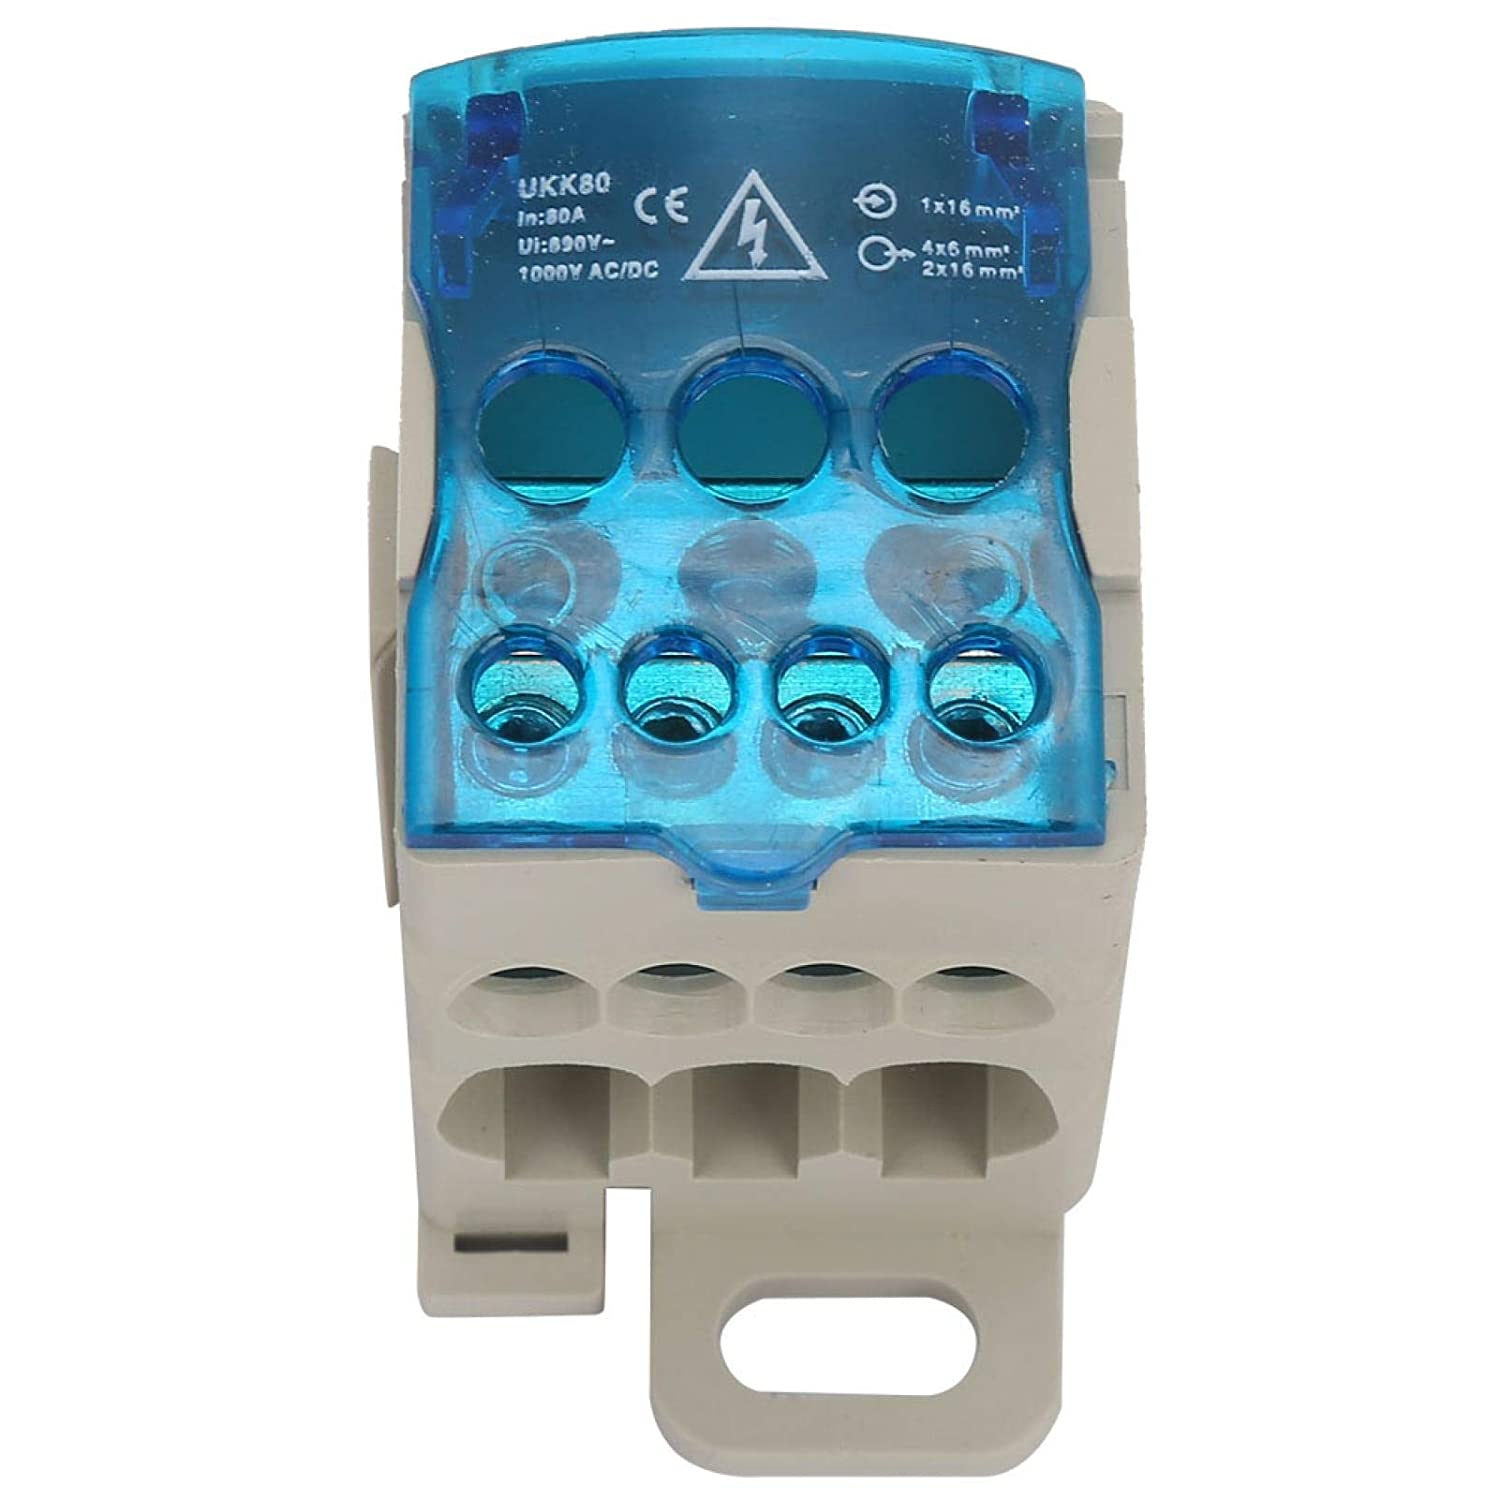 Fafeicy Din Rail Terminal Block Electric Box Distribution Wire Safety store and trust C